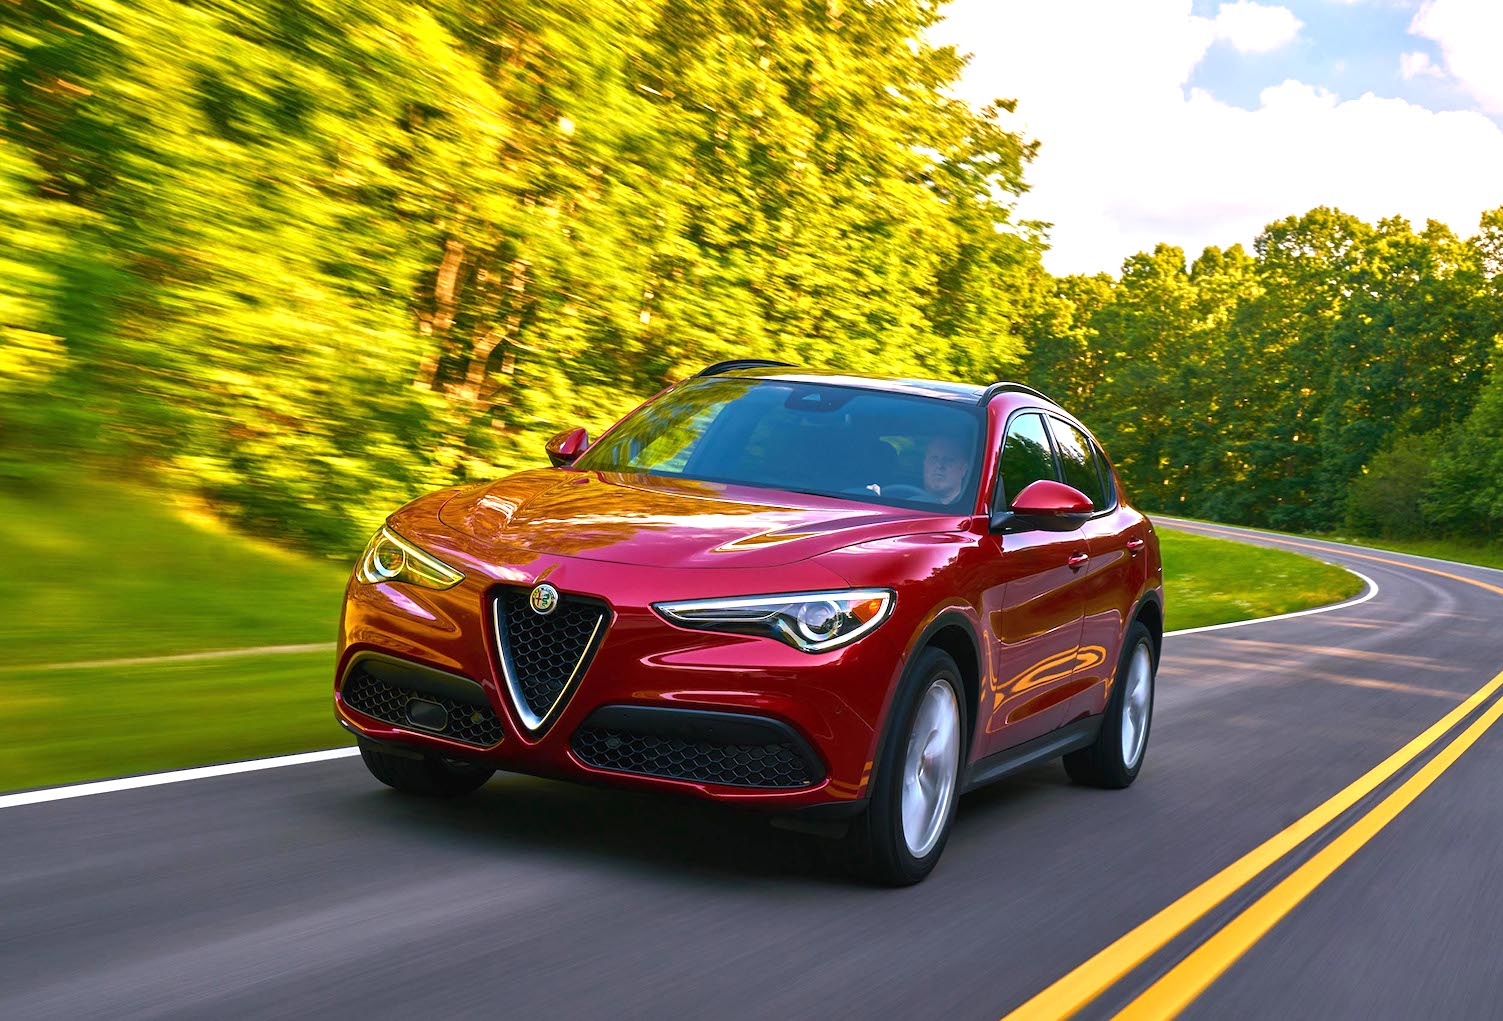 Alfa Romeos Suv For The S Curves Palm Beach Illustrated Romeo Sound Has To Be Its Italian Ness Just Mouthing Words Rom Ey Oh Ideally With A Shrug Of Shoulders Makes You Like Cast